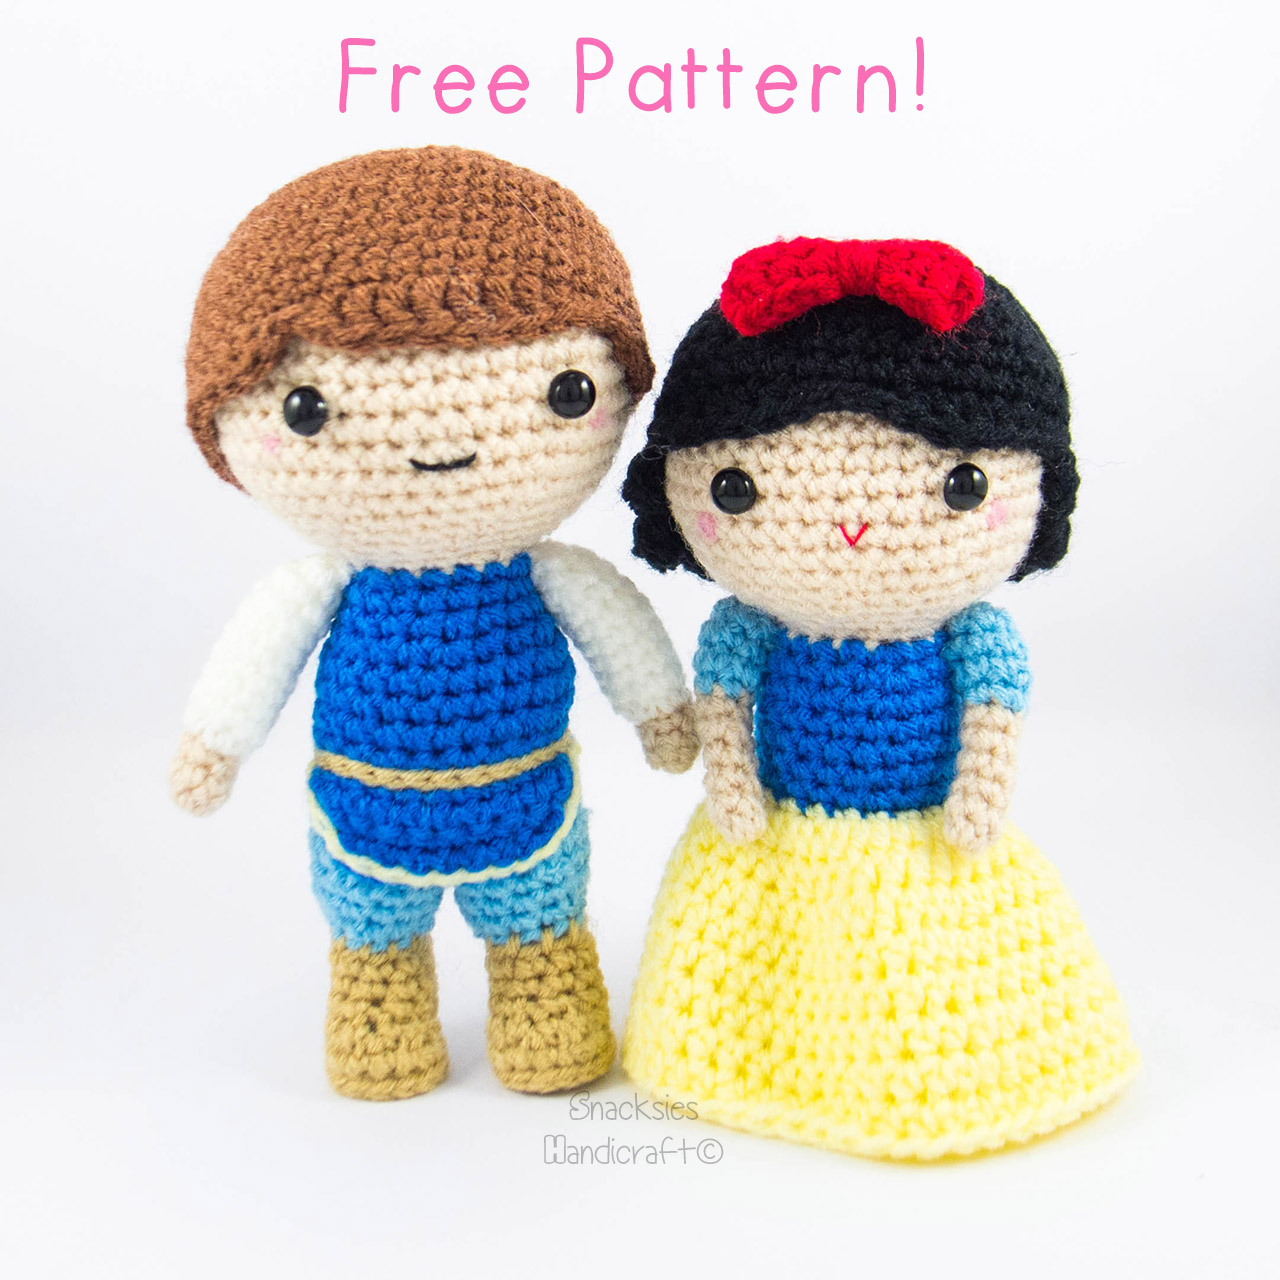 Free Amigurumi Patterns Online : Snow White and Prince Amigurumi Pattern (Free) ~ Snacksies ...